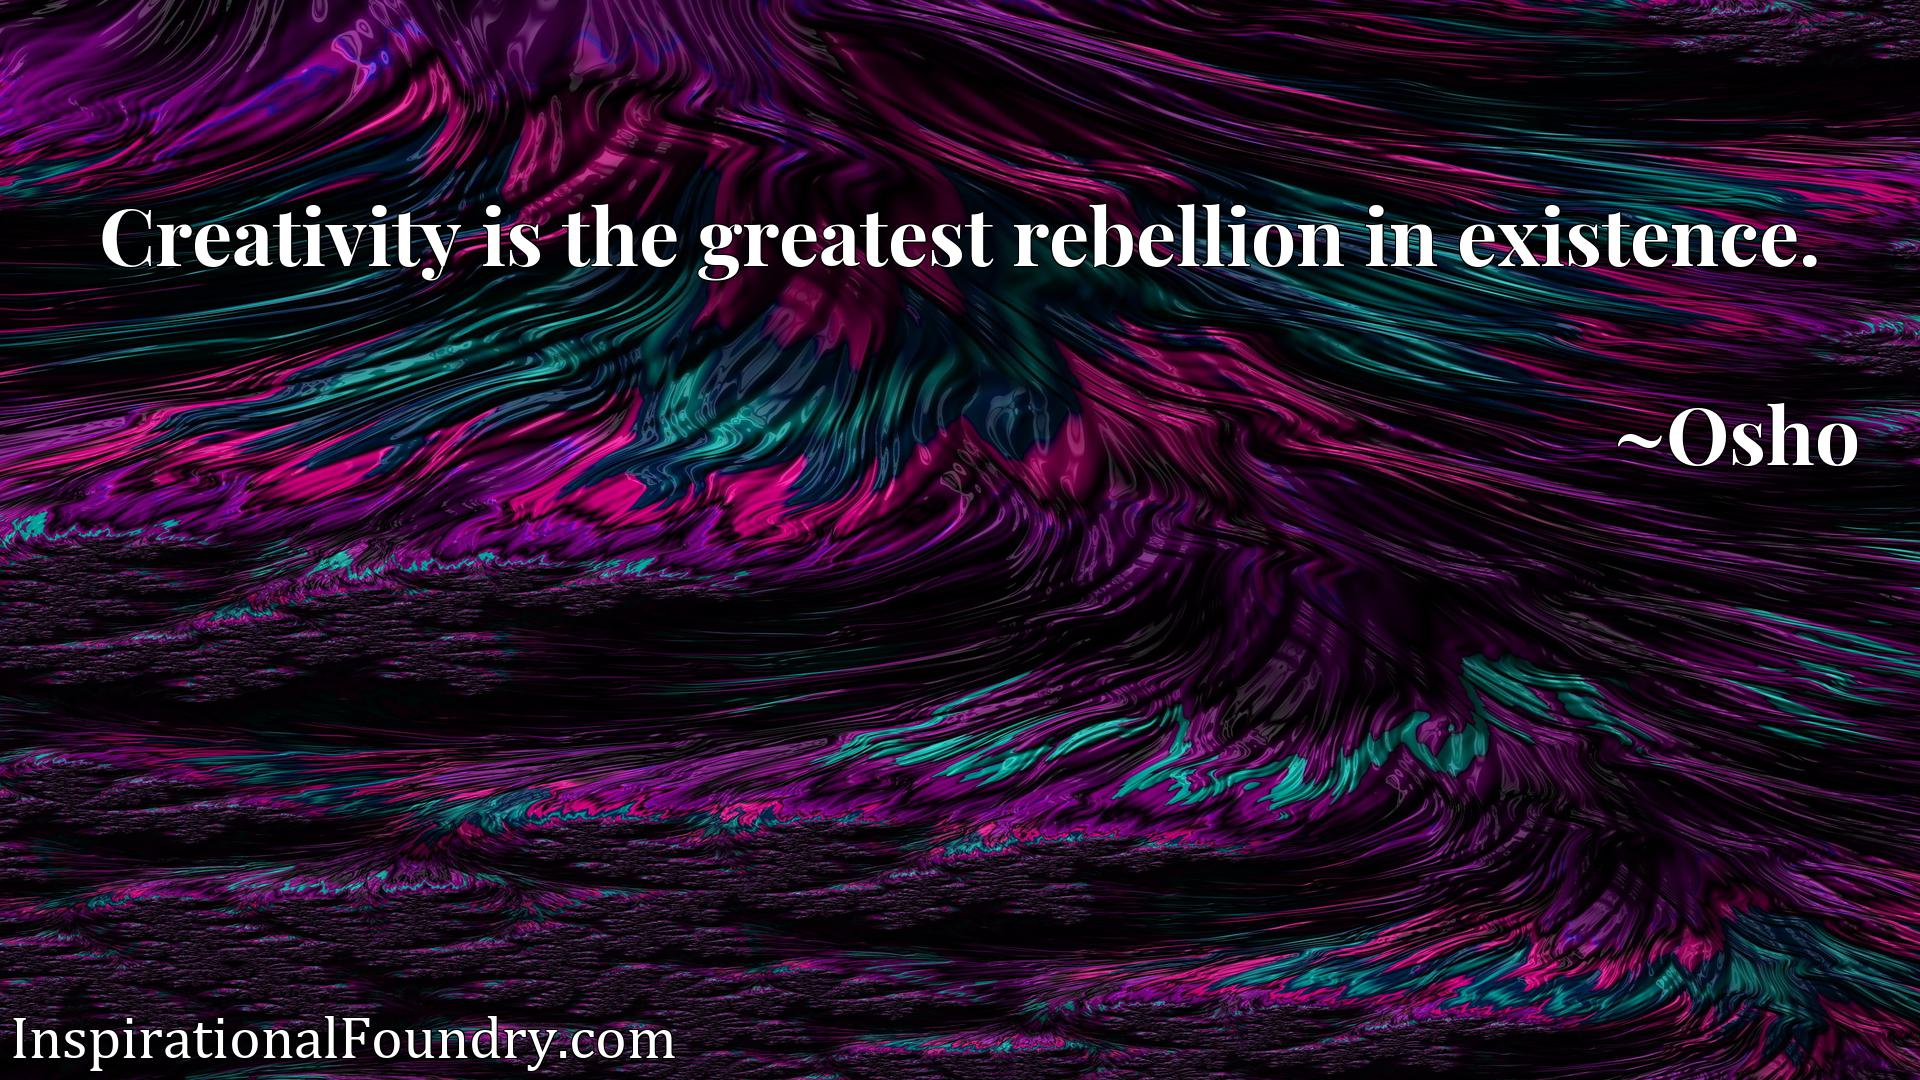 Creativity is the greatest rebellion in existence.